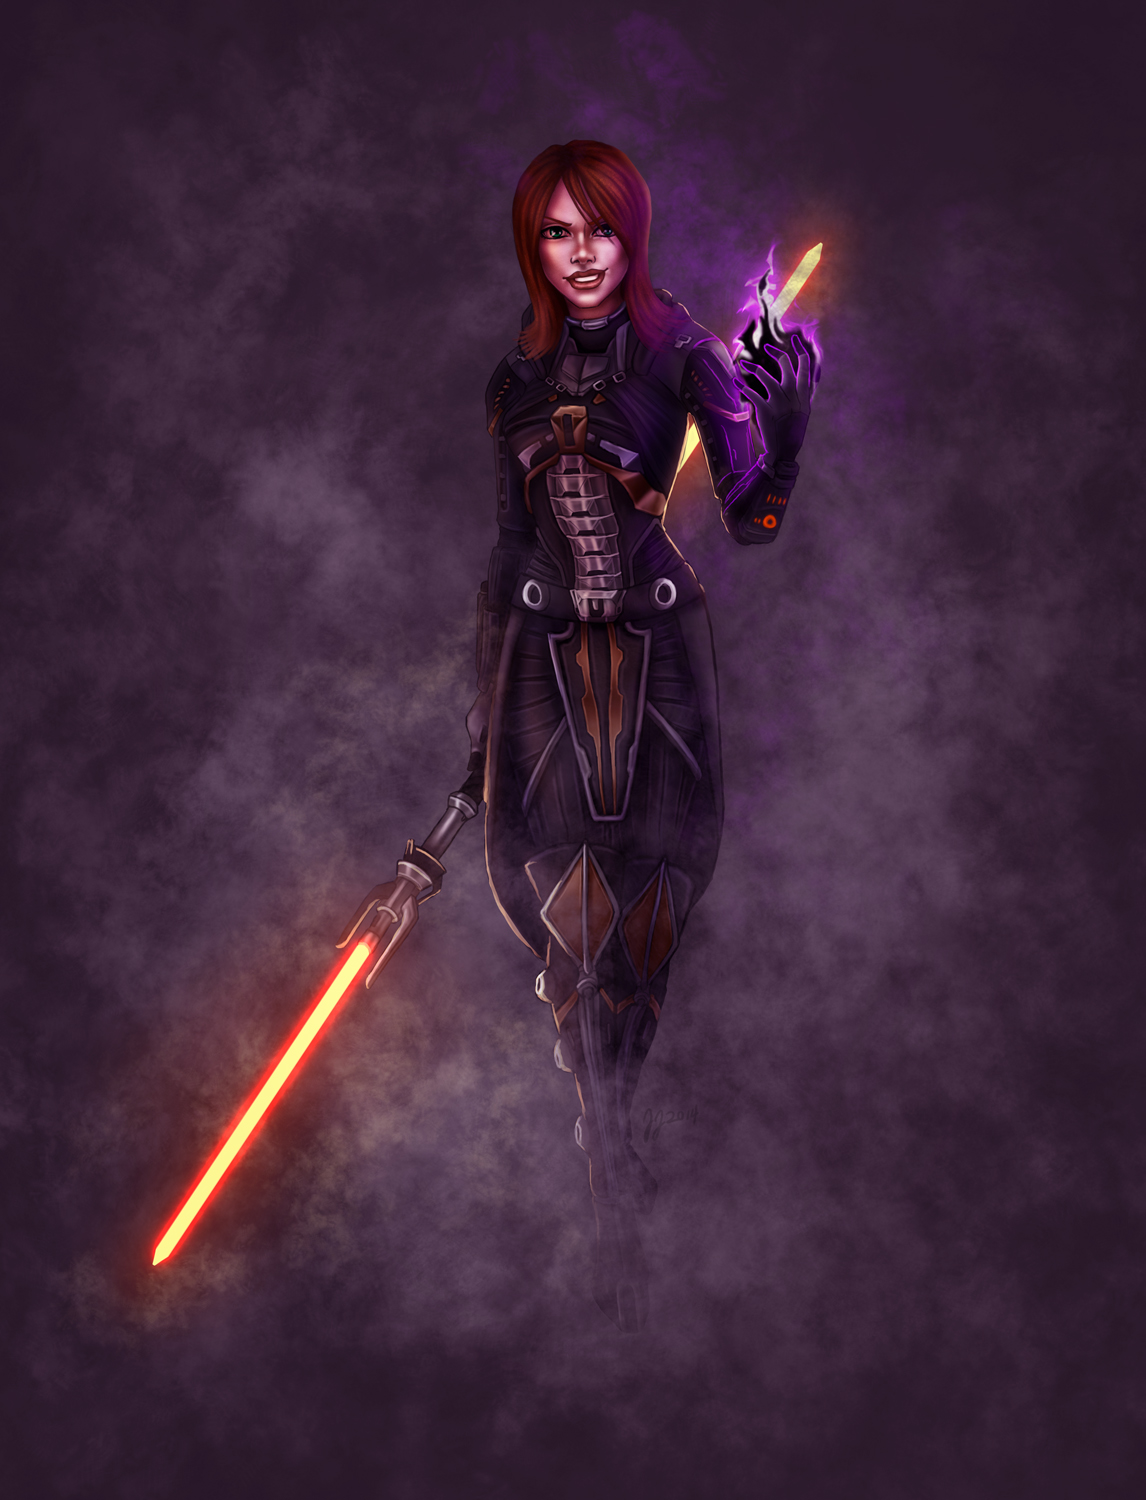 SWTOR Female Sith Warrior - Betraying the Empire and ...